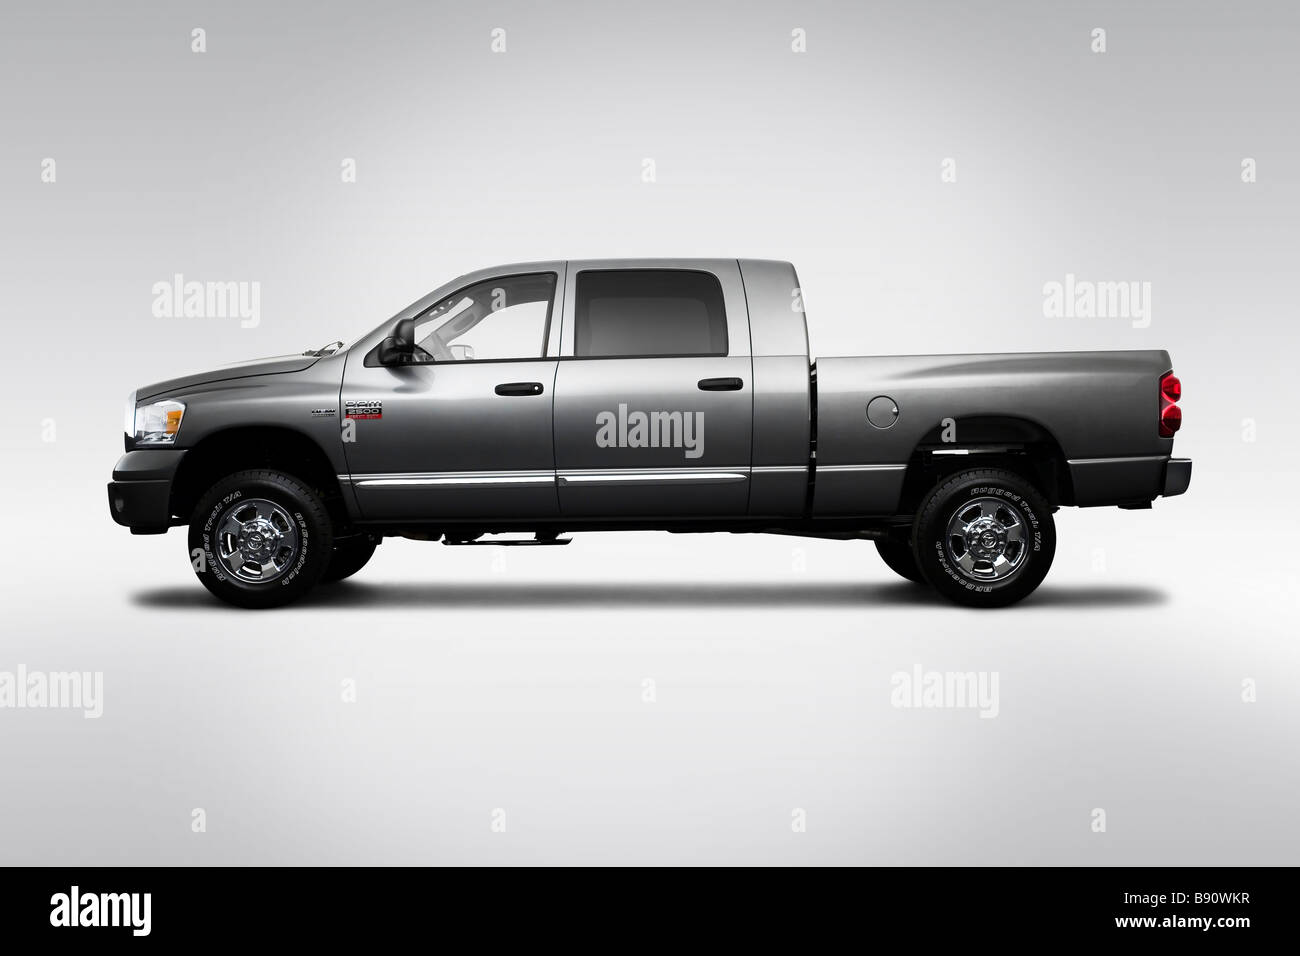 hight resolution of 2009 dodge ram 2500 laramie in gray drivers side profile stock image